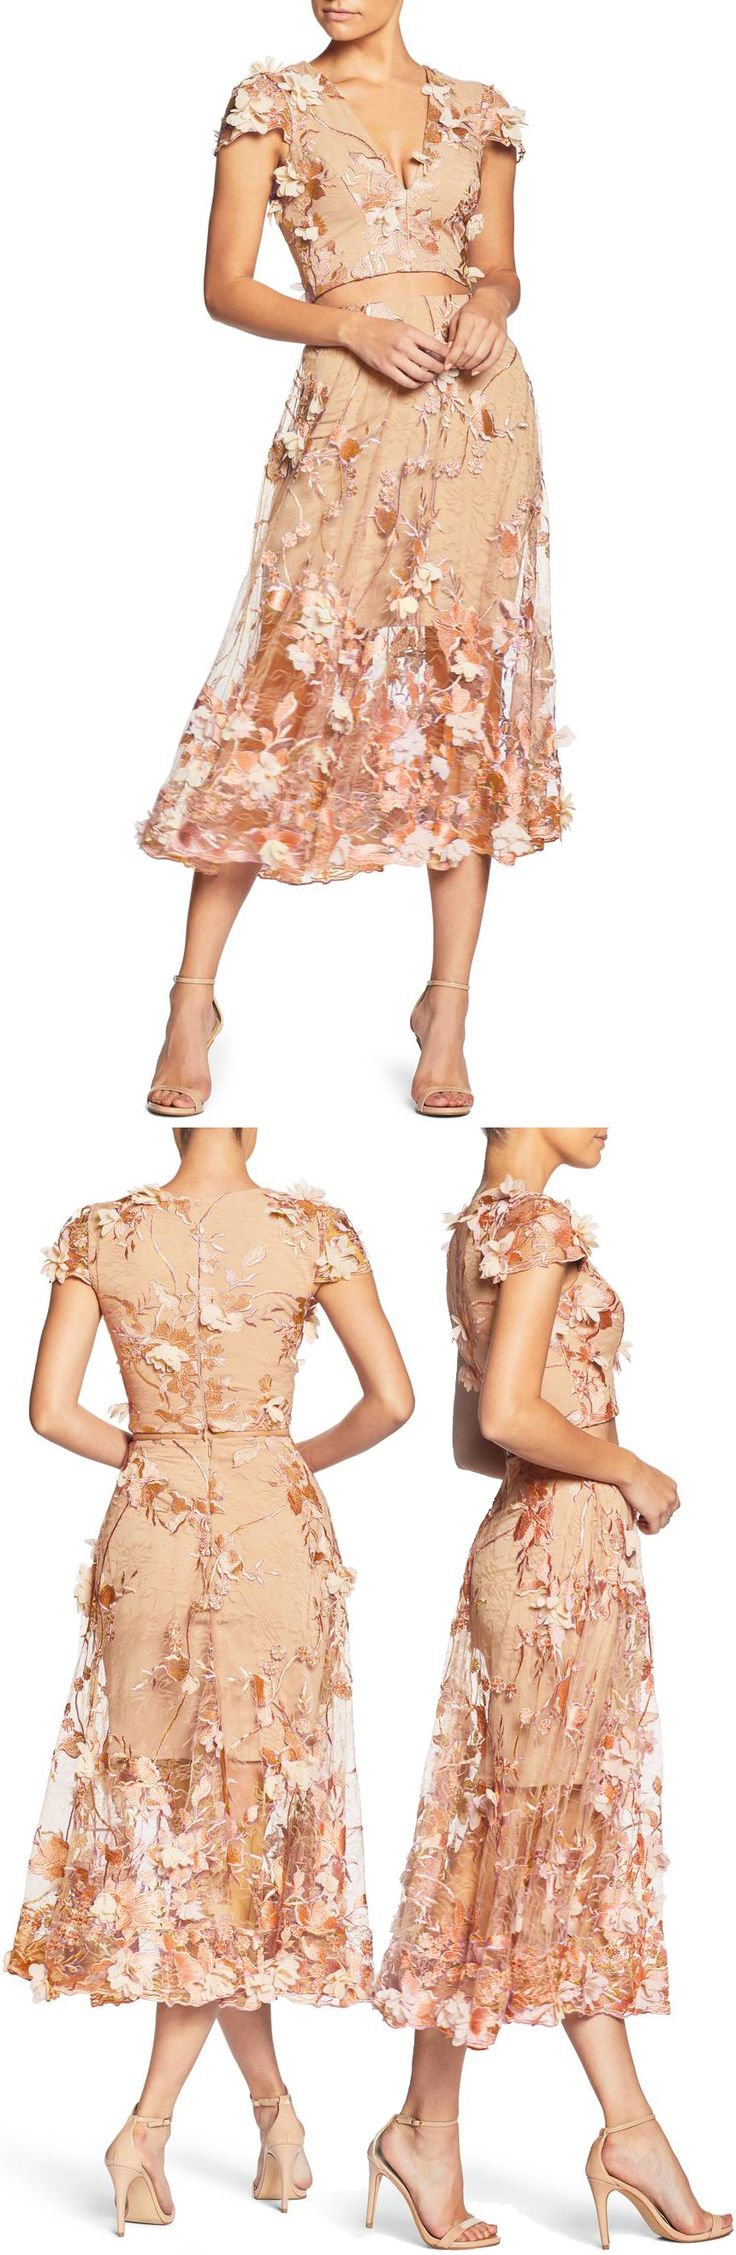 Juliana 3D Lace Two-Piece Dress by Dress The Population #dress #twopiecedress #formaldress #formalgown #eveninggown #fashion #womensfashion formal dress | formal dresses for teens |  Formal Dresses | formal dress |  Formal Dresses | Formal Dress Outfits